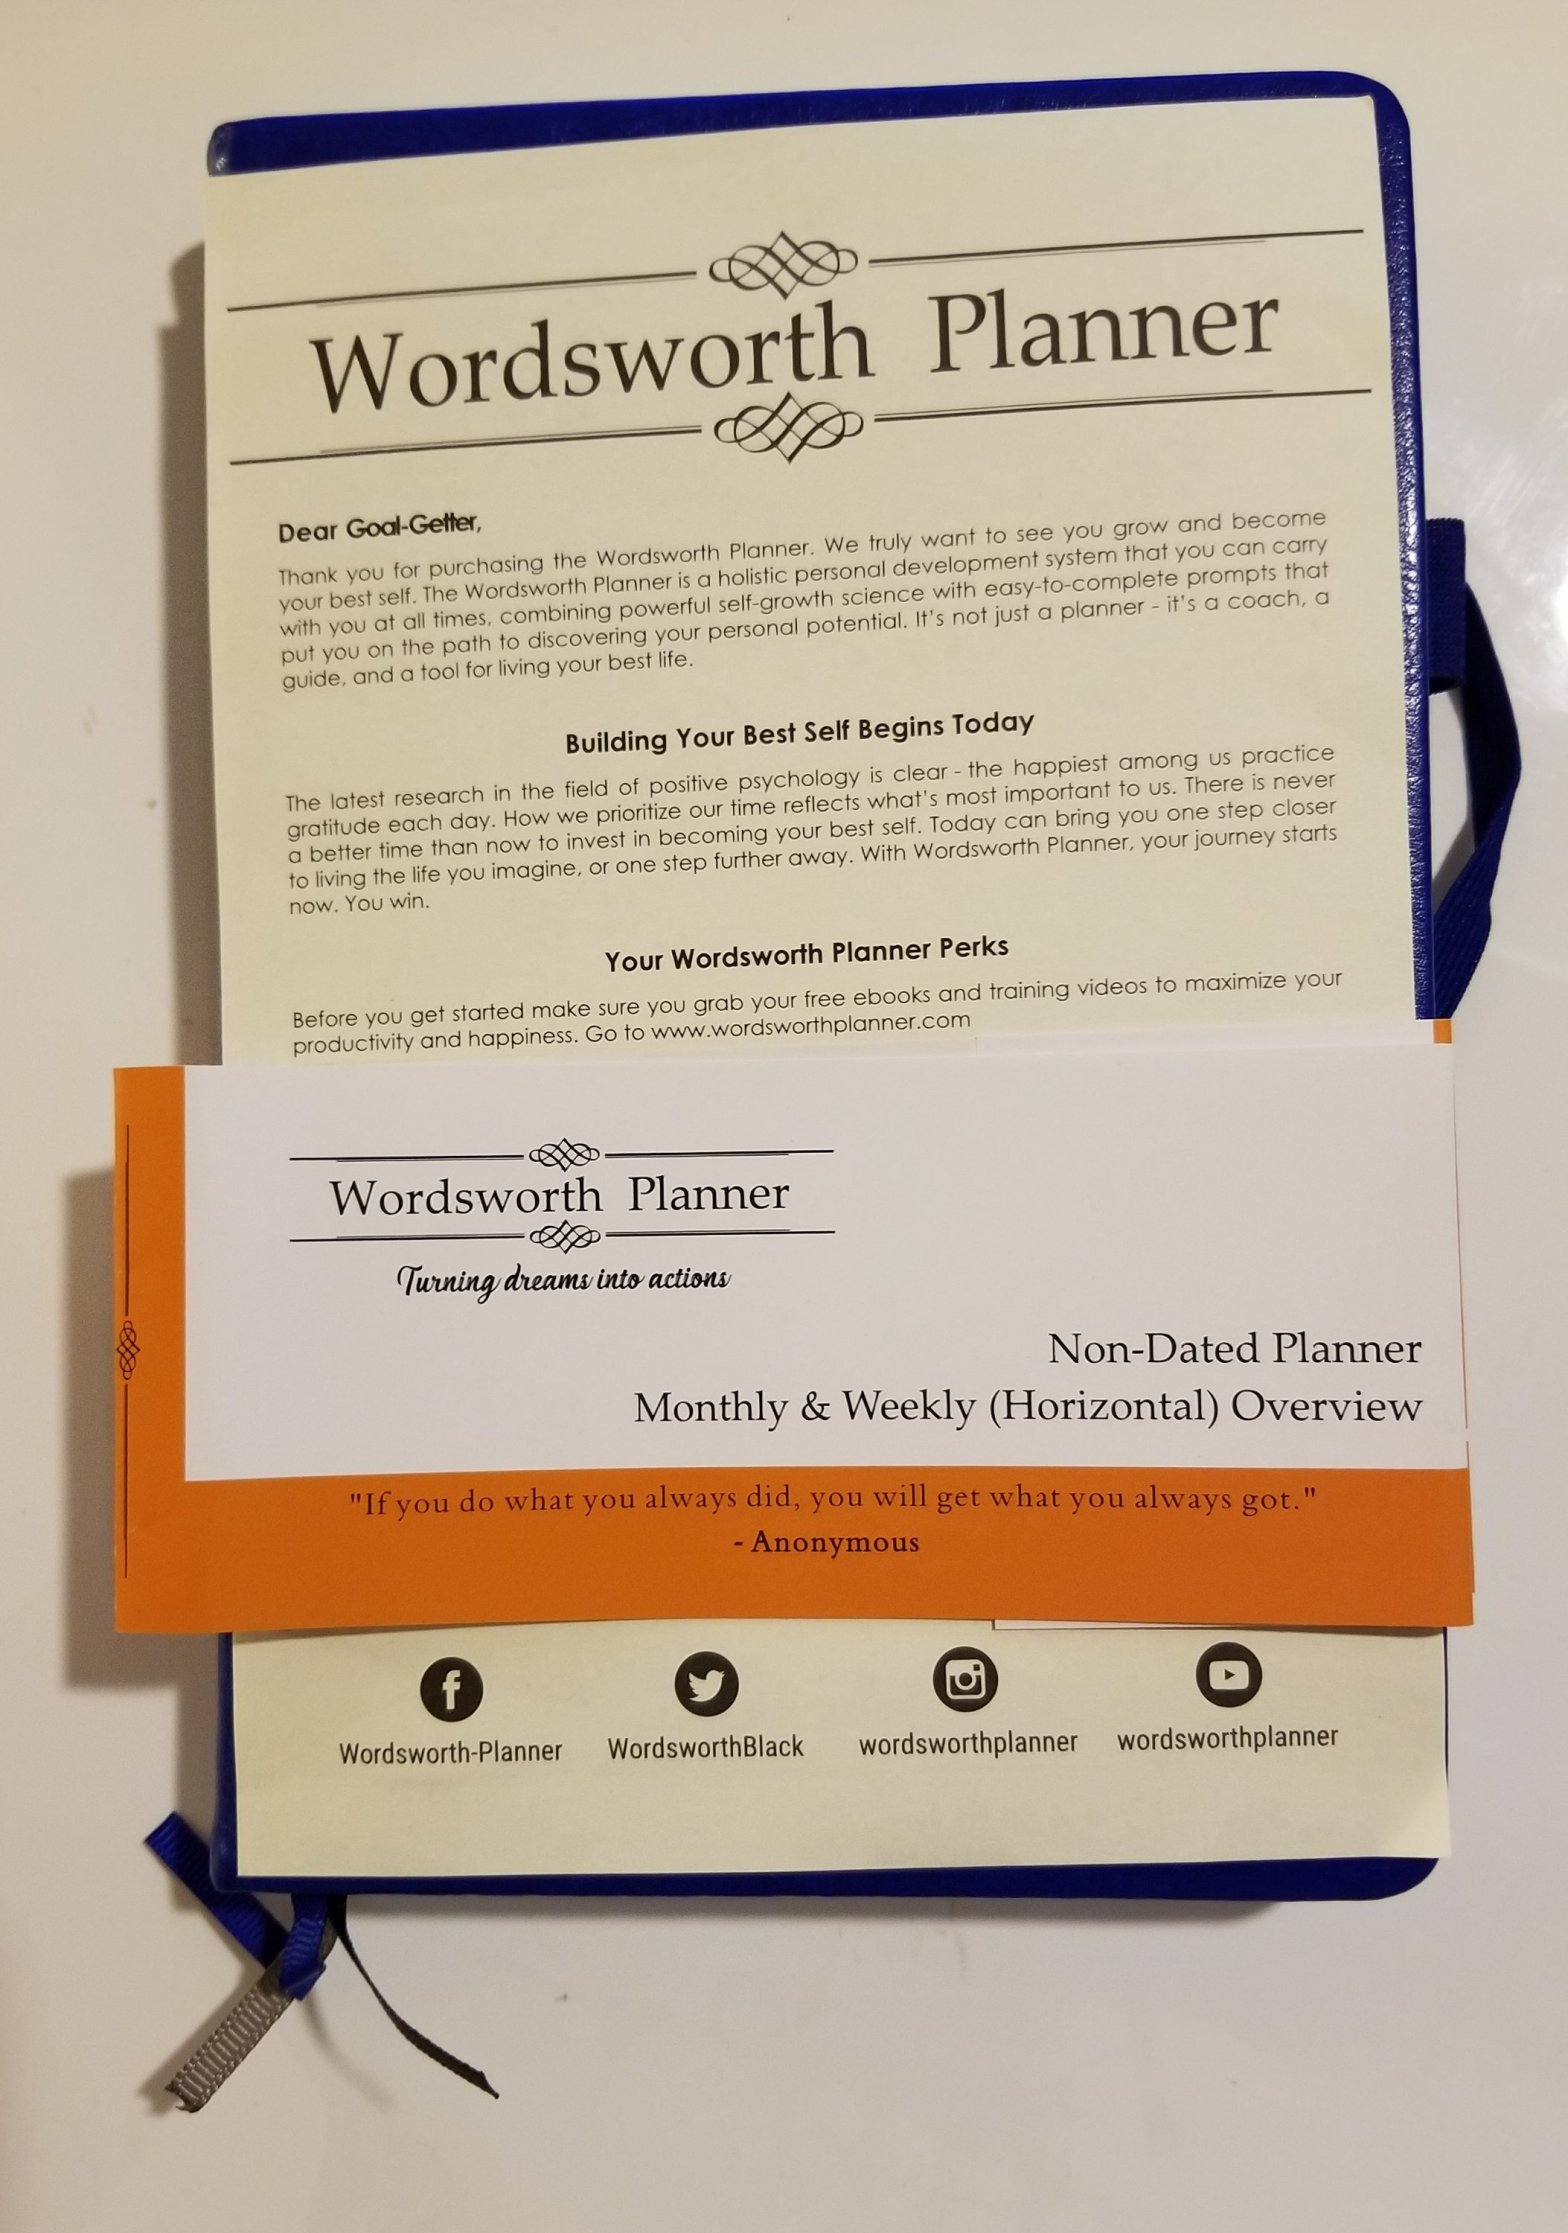 Wordsworth Planner